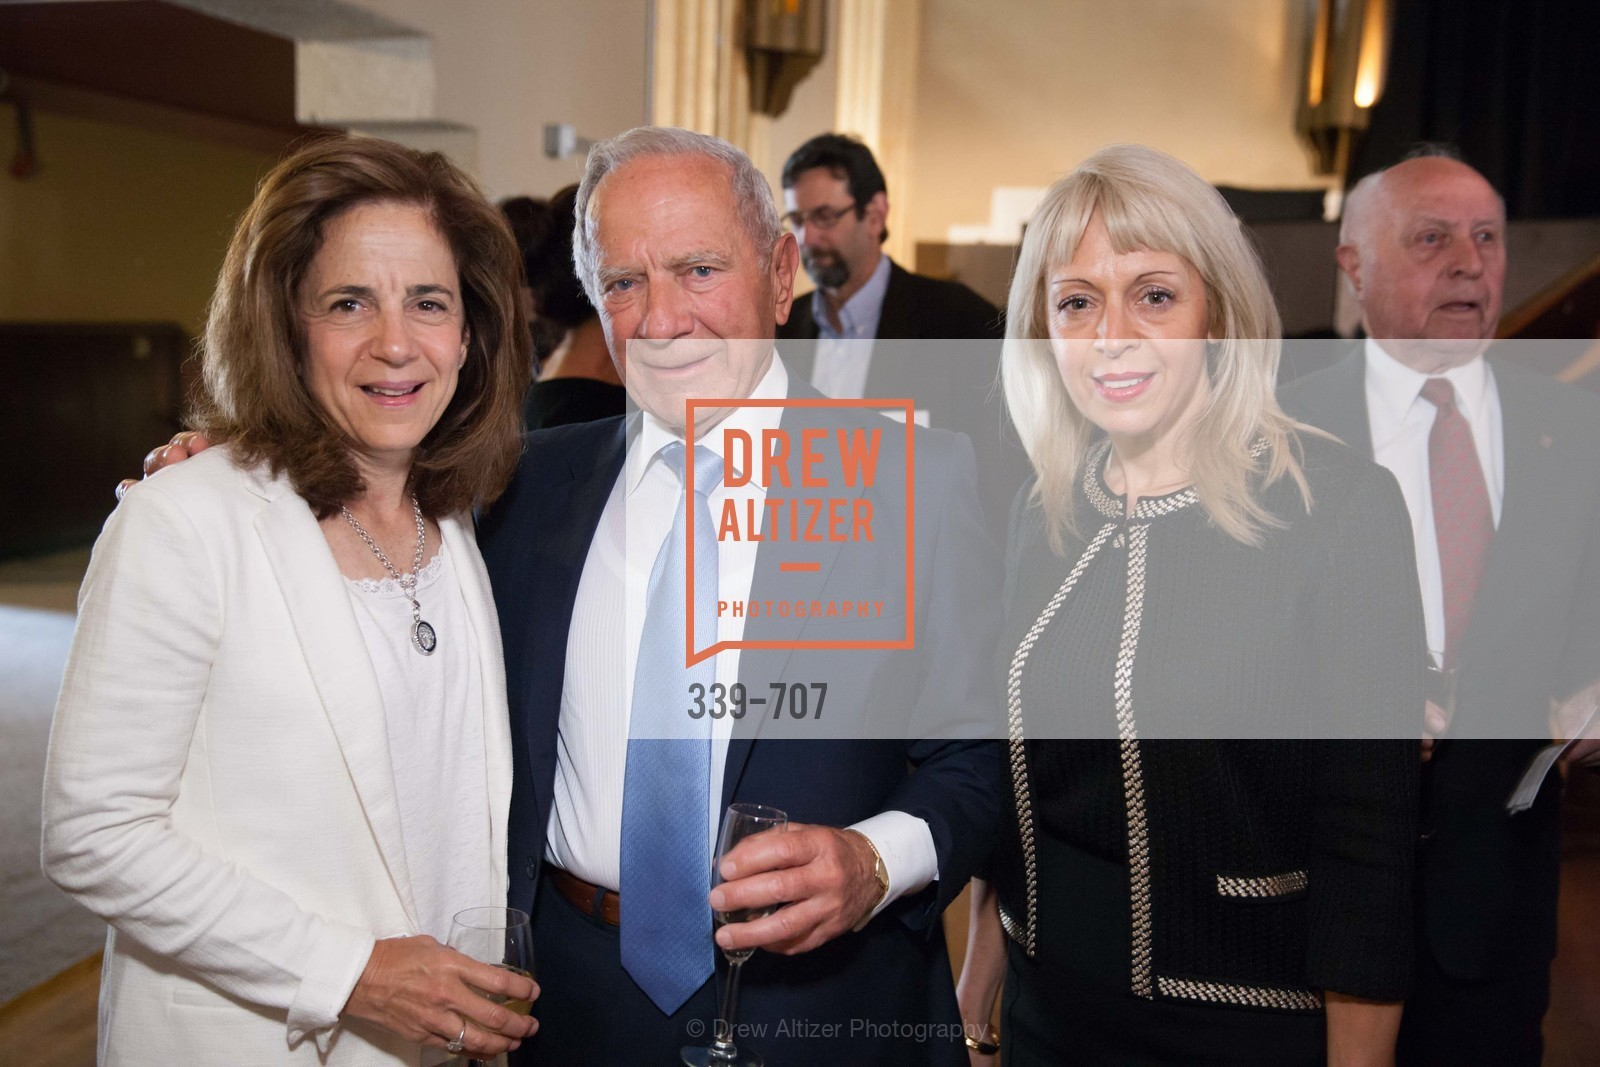 Anne Gust Brown, Milan Panic, Alexandra Novak, OAKLAND SCHOOL FOR THE ARTS Gala 2015 with Governor Jerry Brown, US, May 8th, 2015,Drew Altizer, Drew Altizer Photography, full-service agency, private events, San Francisco photographer, photographer california